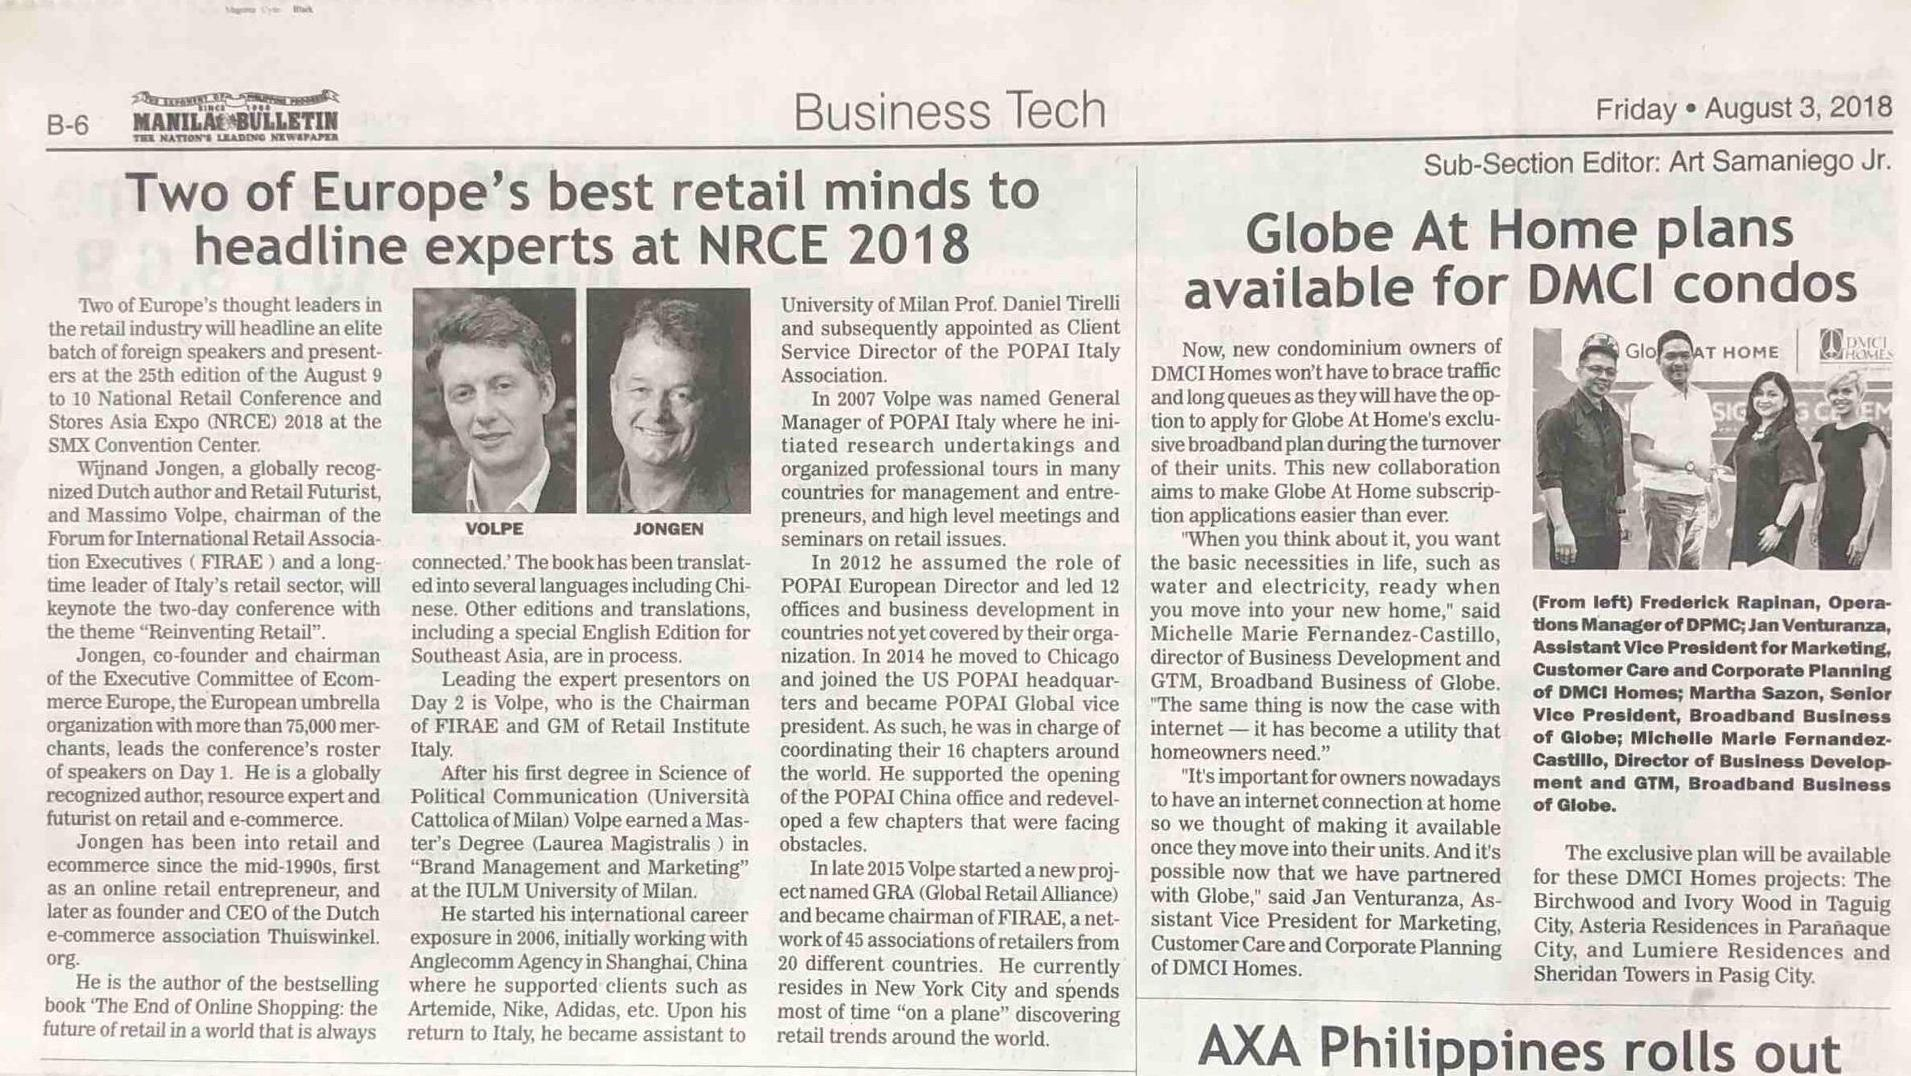 Two of Europe's best retail minds to headline experts at NRCE 2018 – Manila Bulletin